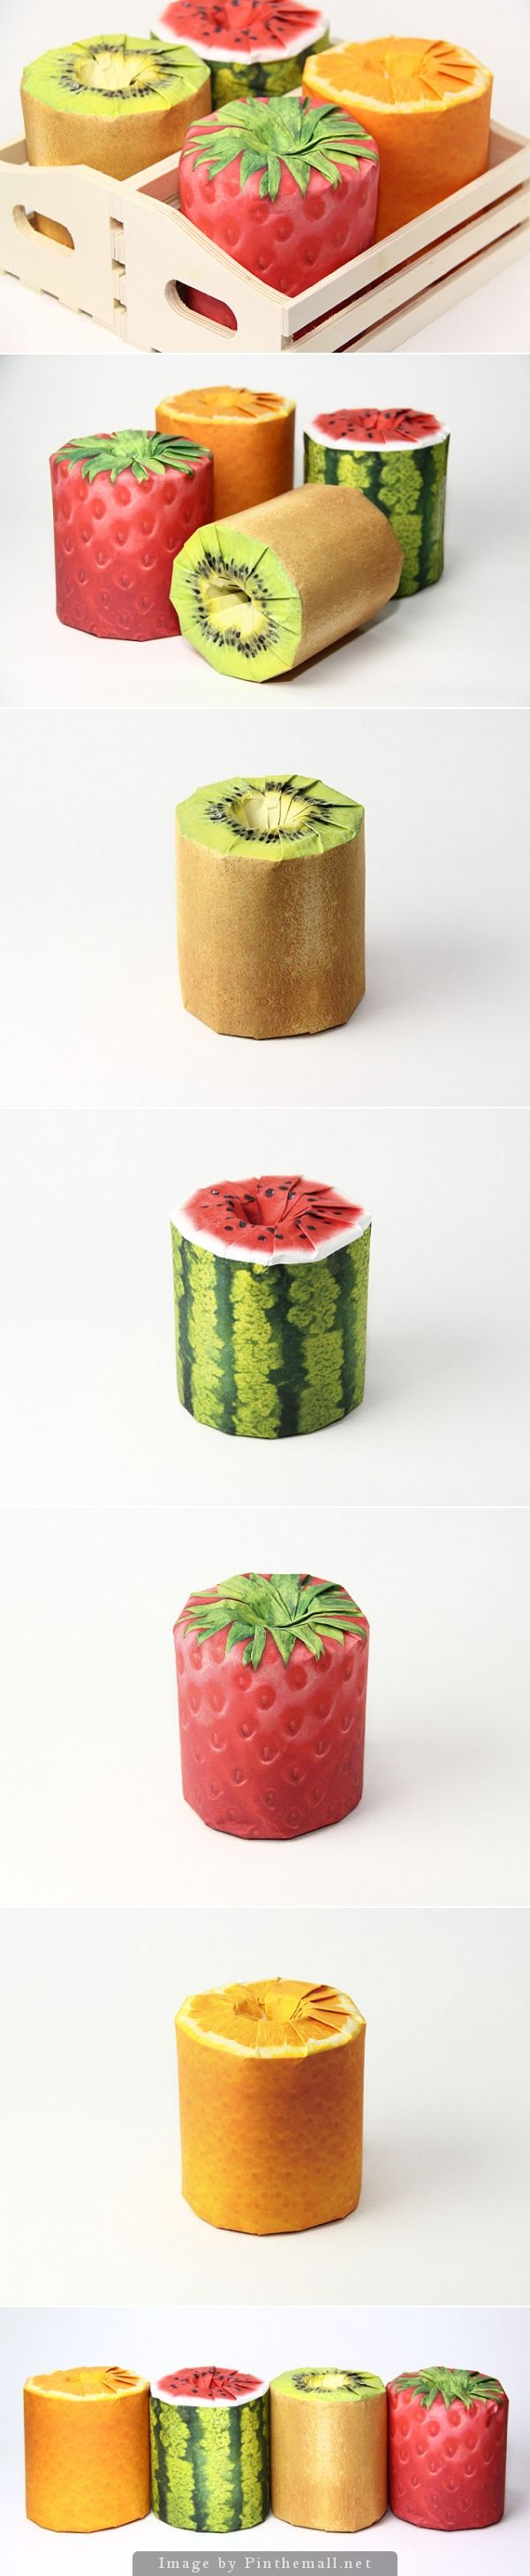 Why can't all toilet paper look like this? Fun packaging concept that I would buy and so would everybody else curated by Packaging Diva PD created via http://www.packagingoftheworld.com/2014/09/fruits-toilet-paper-concept.html